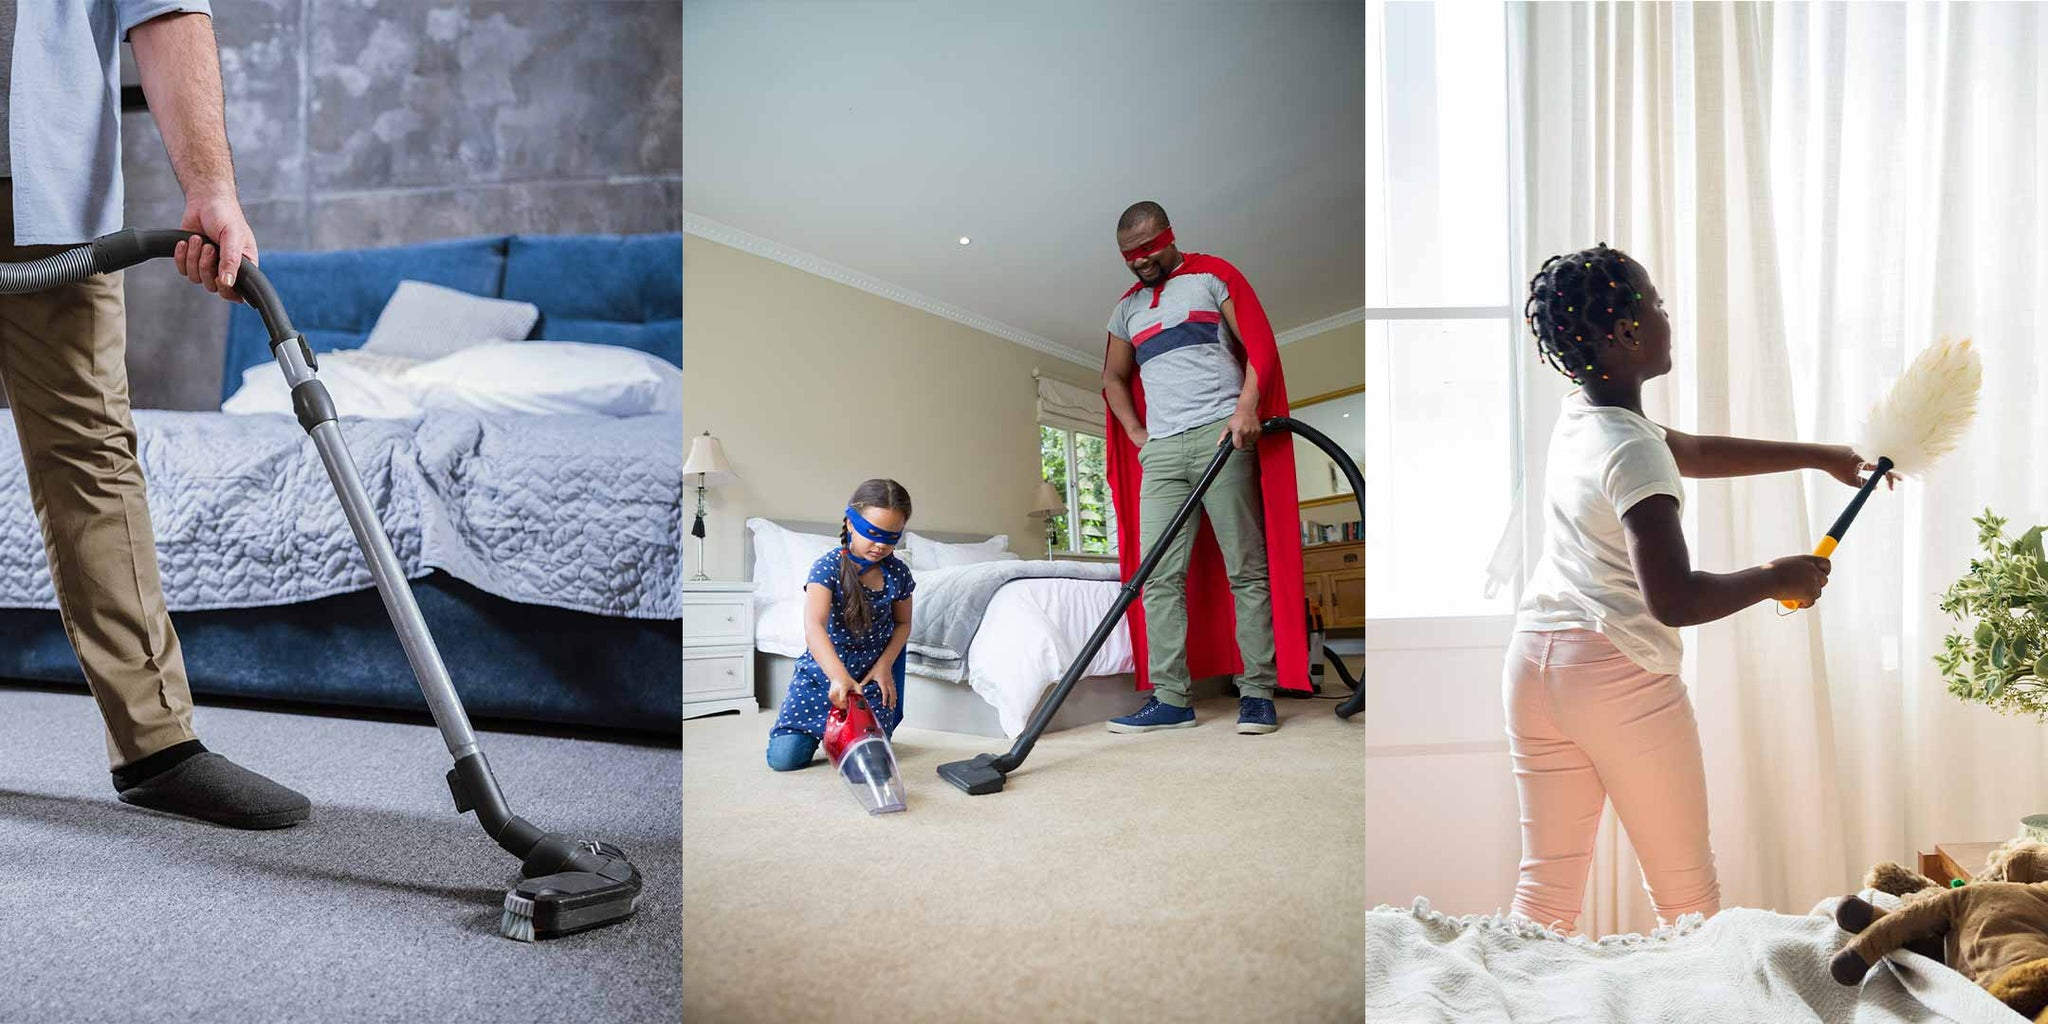 Bedroom Cleaning to avoid Bed bugs